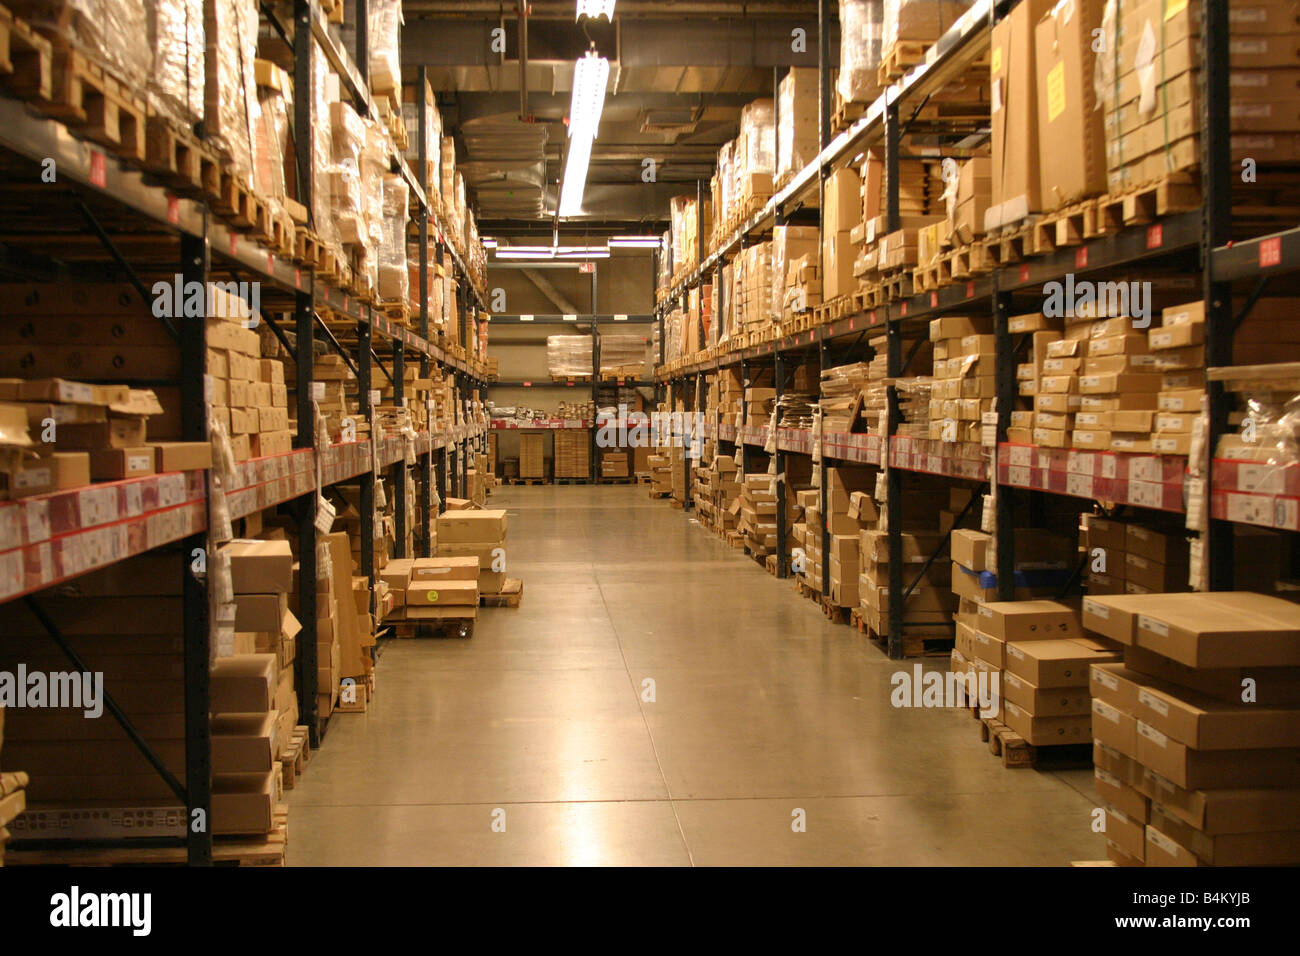 packages lining shelves in a warehouse Stock Photo